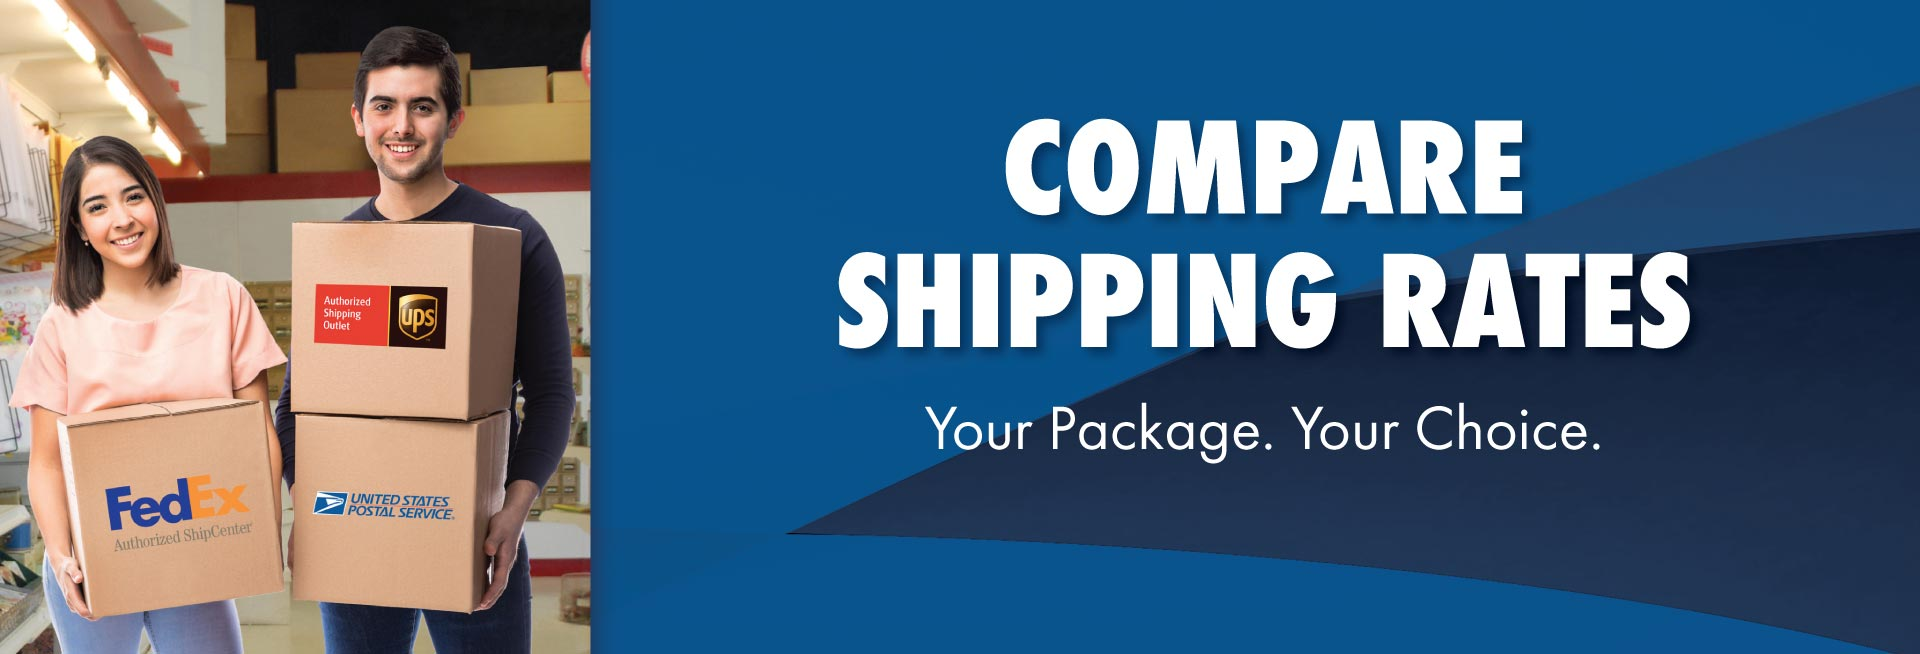 COMPARE SHIPPING RATES - Your Package. Your Choice - UPS, FedEx, USPS